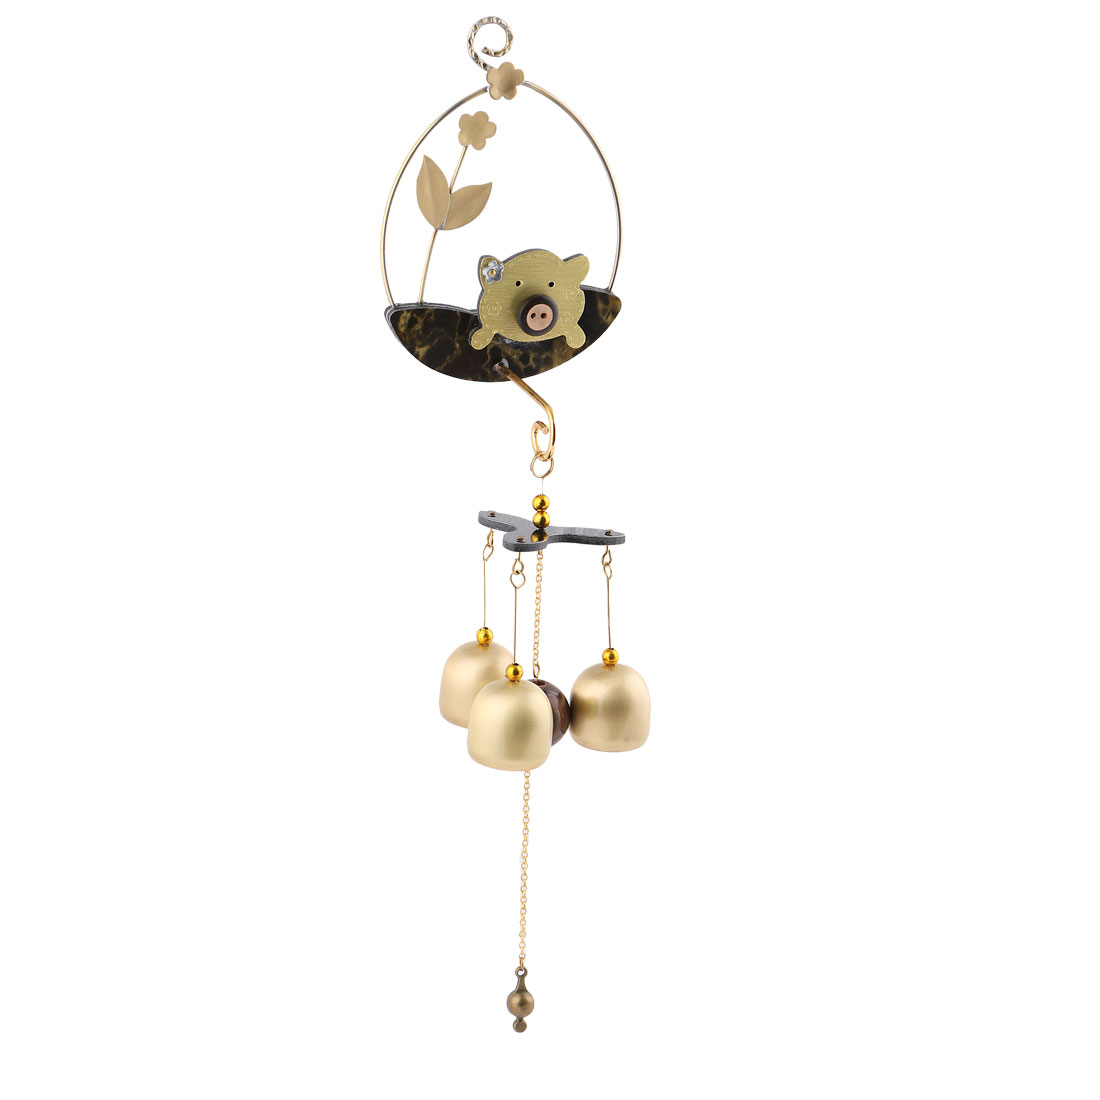 Living Room Copper Vintage Style Birthday Gift Pendant Wind Bell Chime Windbell